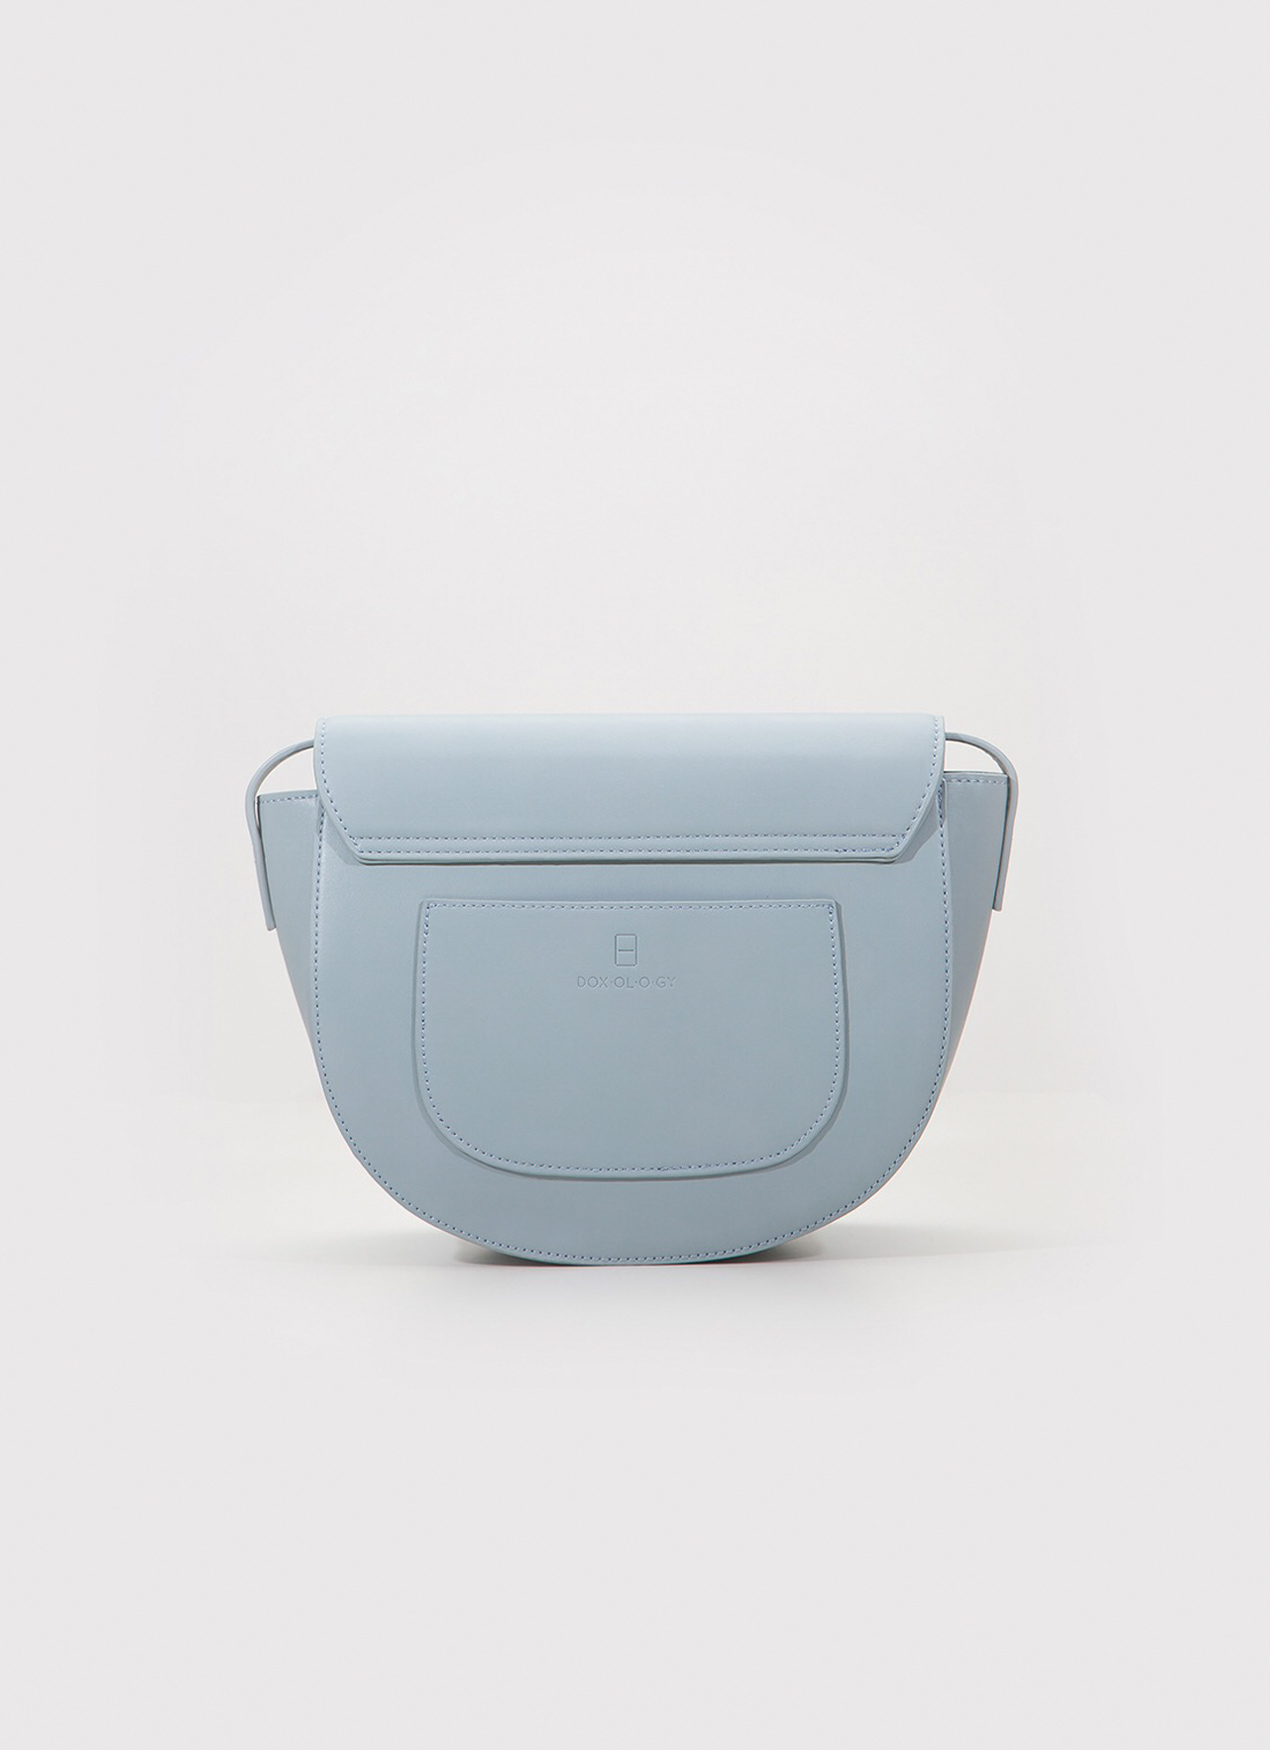 Doxology Doxoluna Crossbody Bag - Carolina Blue